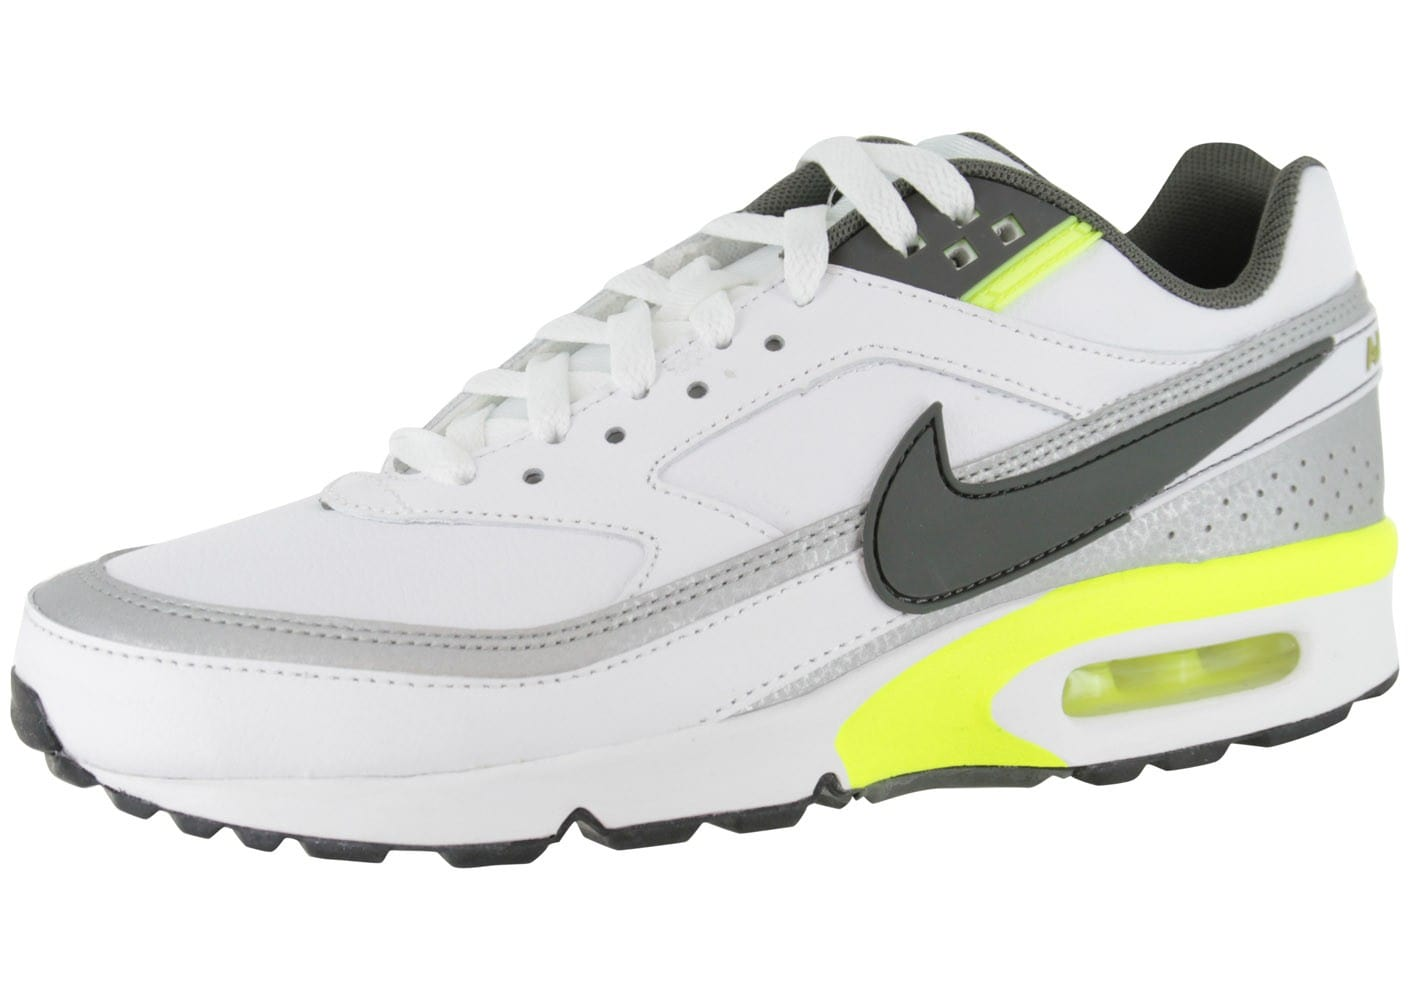 nike air max bw cuir blanche chaussures homme chausport. Black Bedroom Furniture Sets. Home Design Ideas